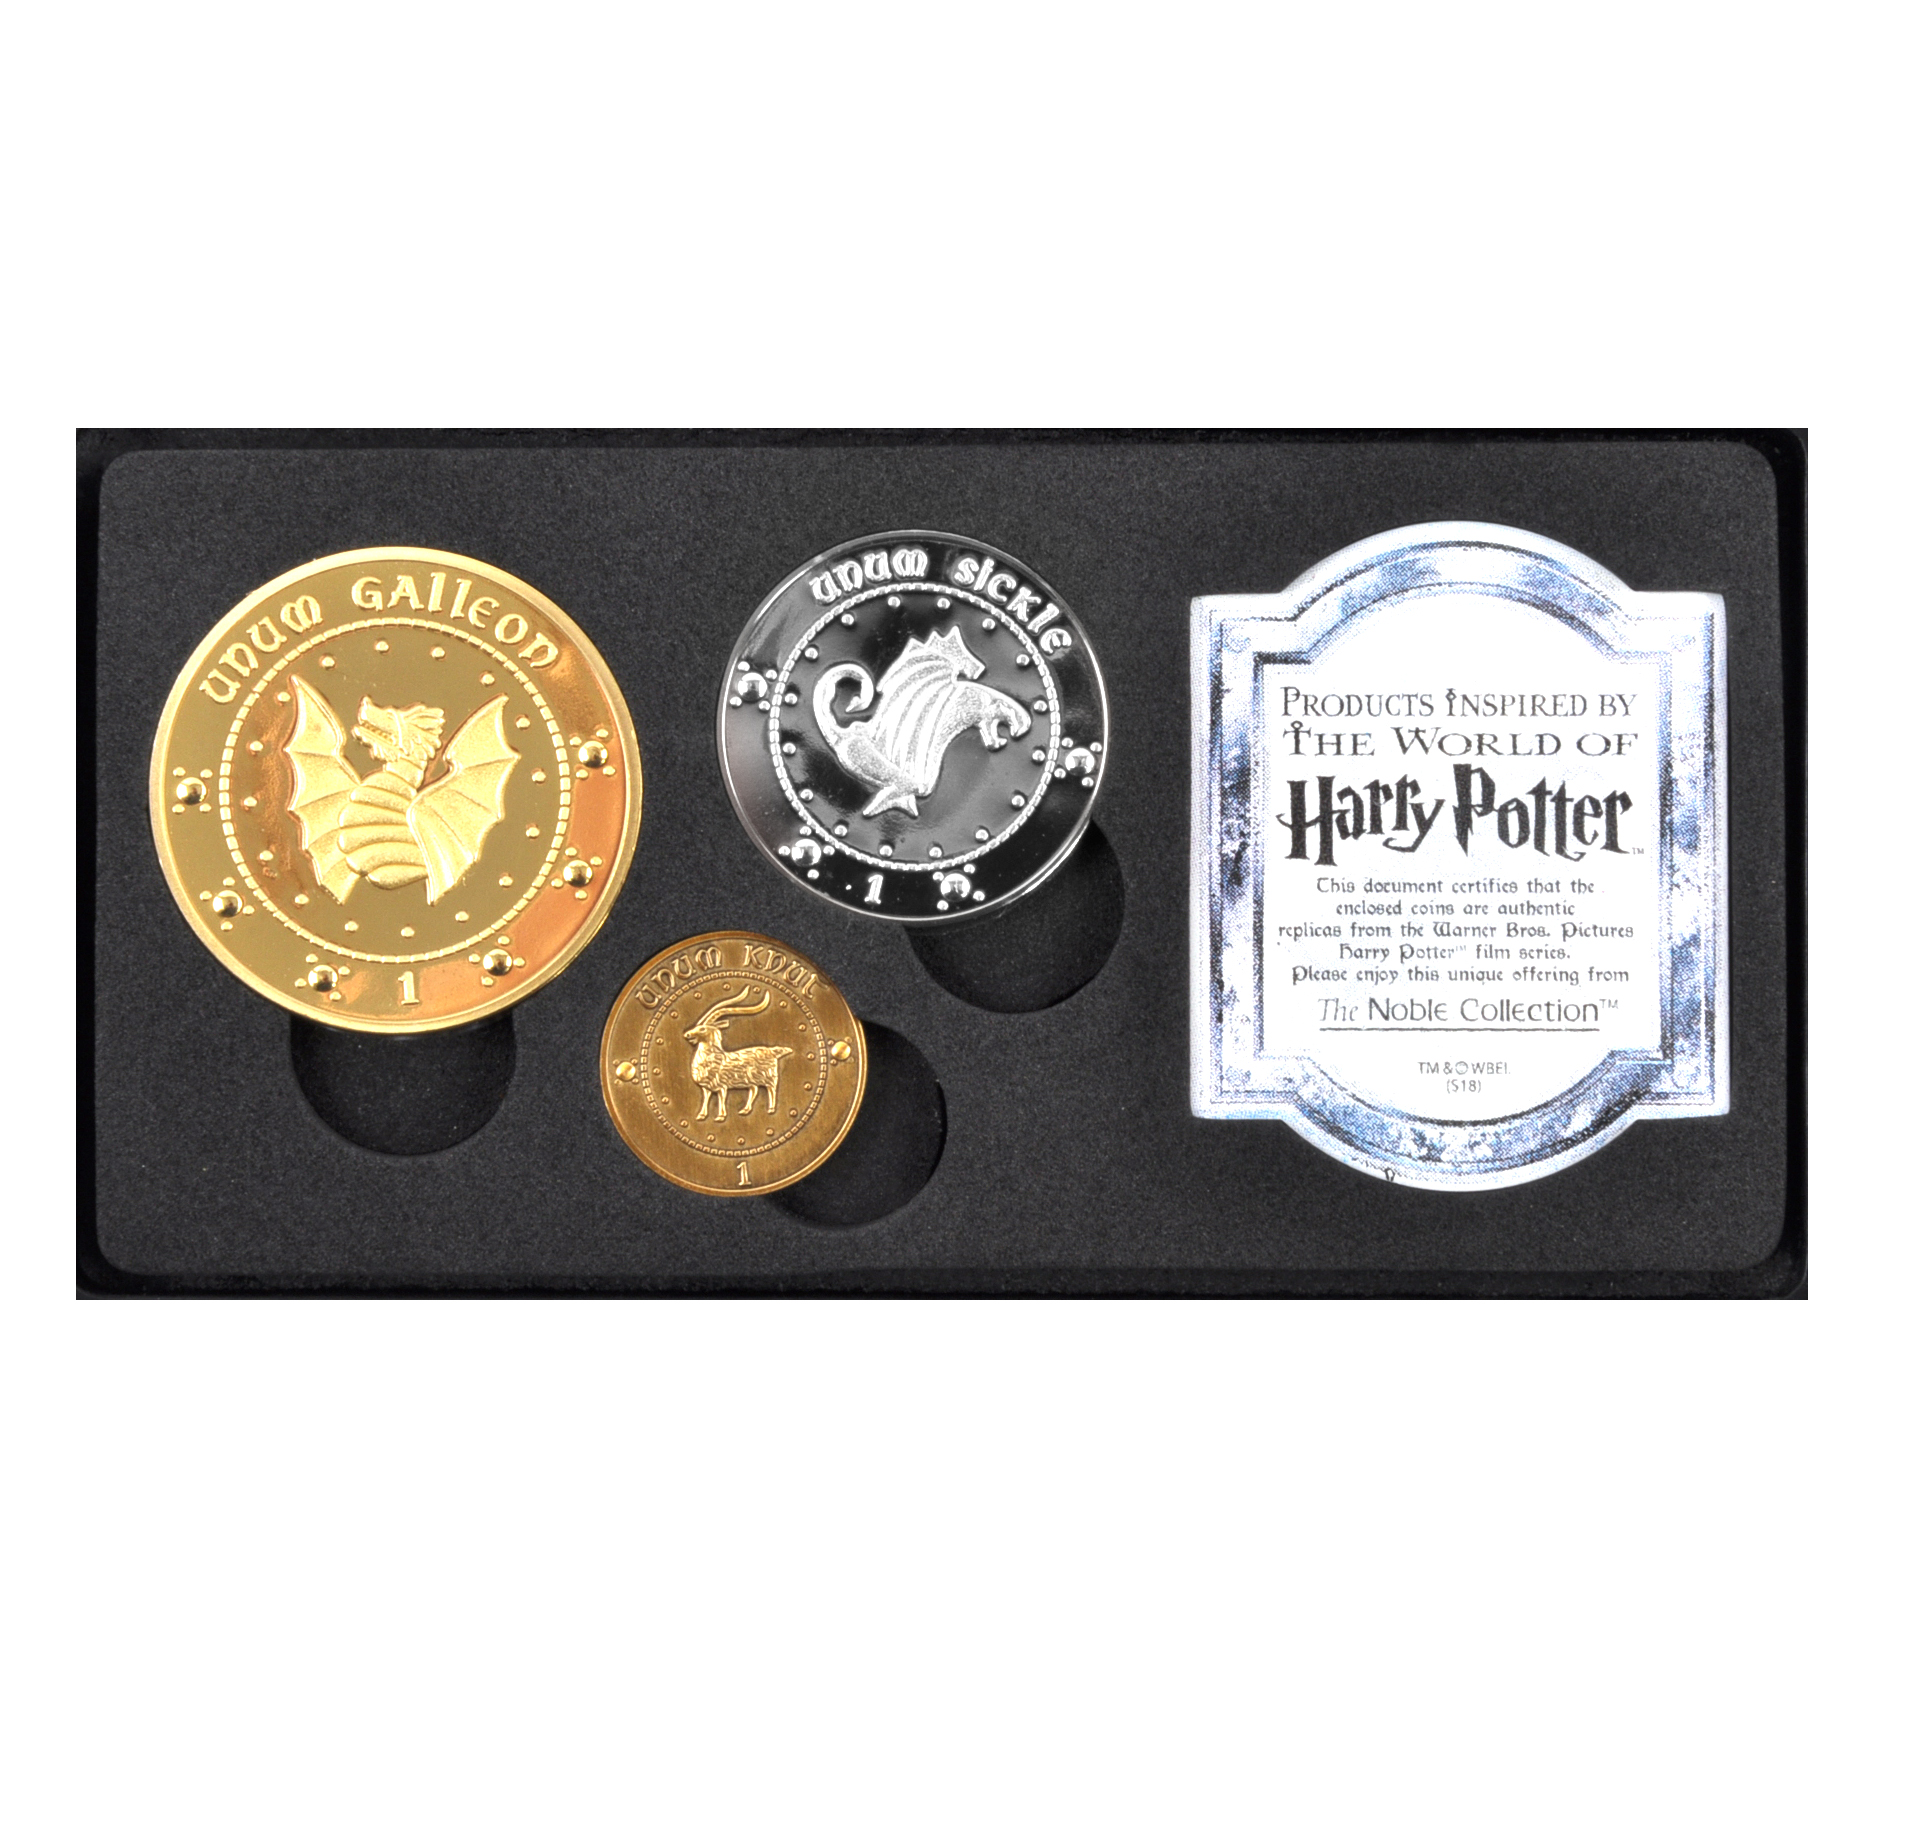 Harry Potter Gringotts Bank Replica Coin Collection - Unum Galleon, Sickle  and Knut Coins - Noble Collection